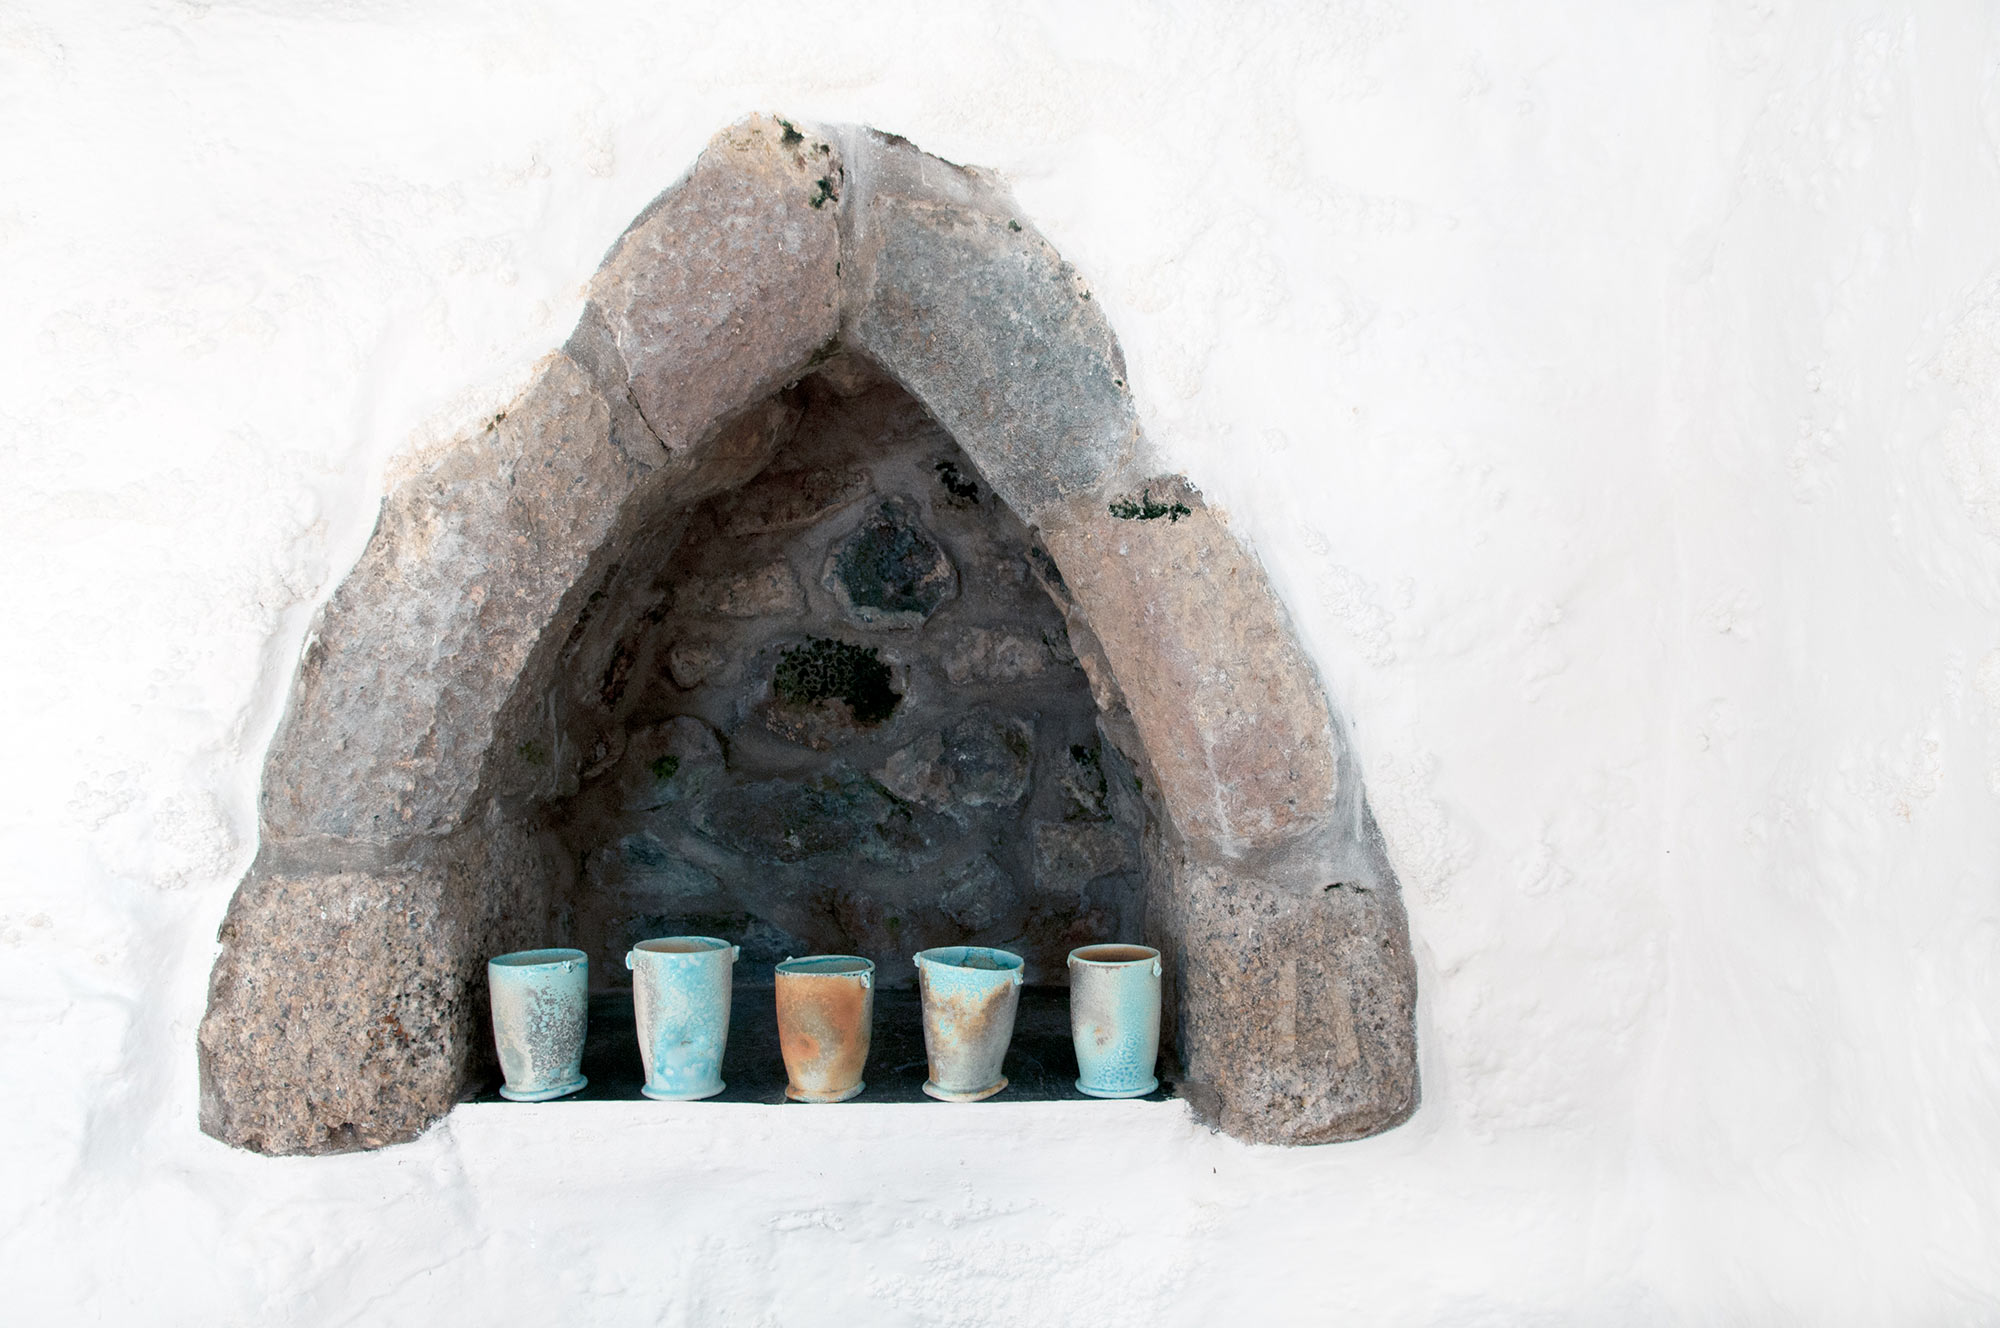 A simple cup form is fundamentally one of the most personal and intimate objects we use everyday or raise up in celebration to mark special occasions. A blessing is given as sign of protection, safe passage and thanksgiving. These blessing cups reveal the hand of the maker and the energy of making.